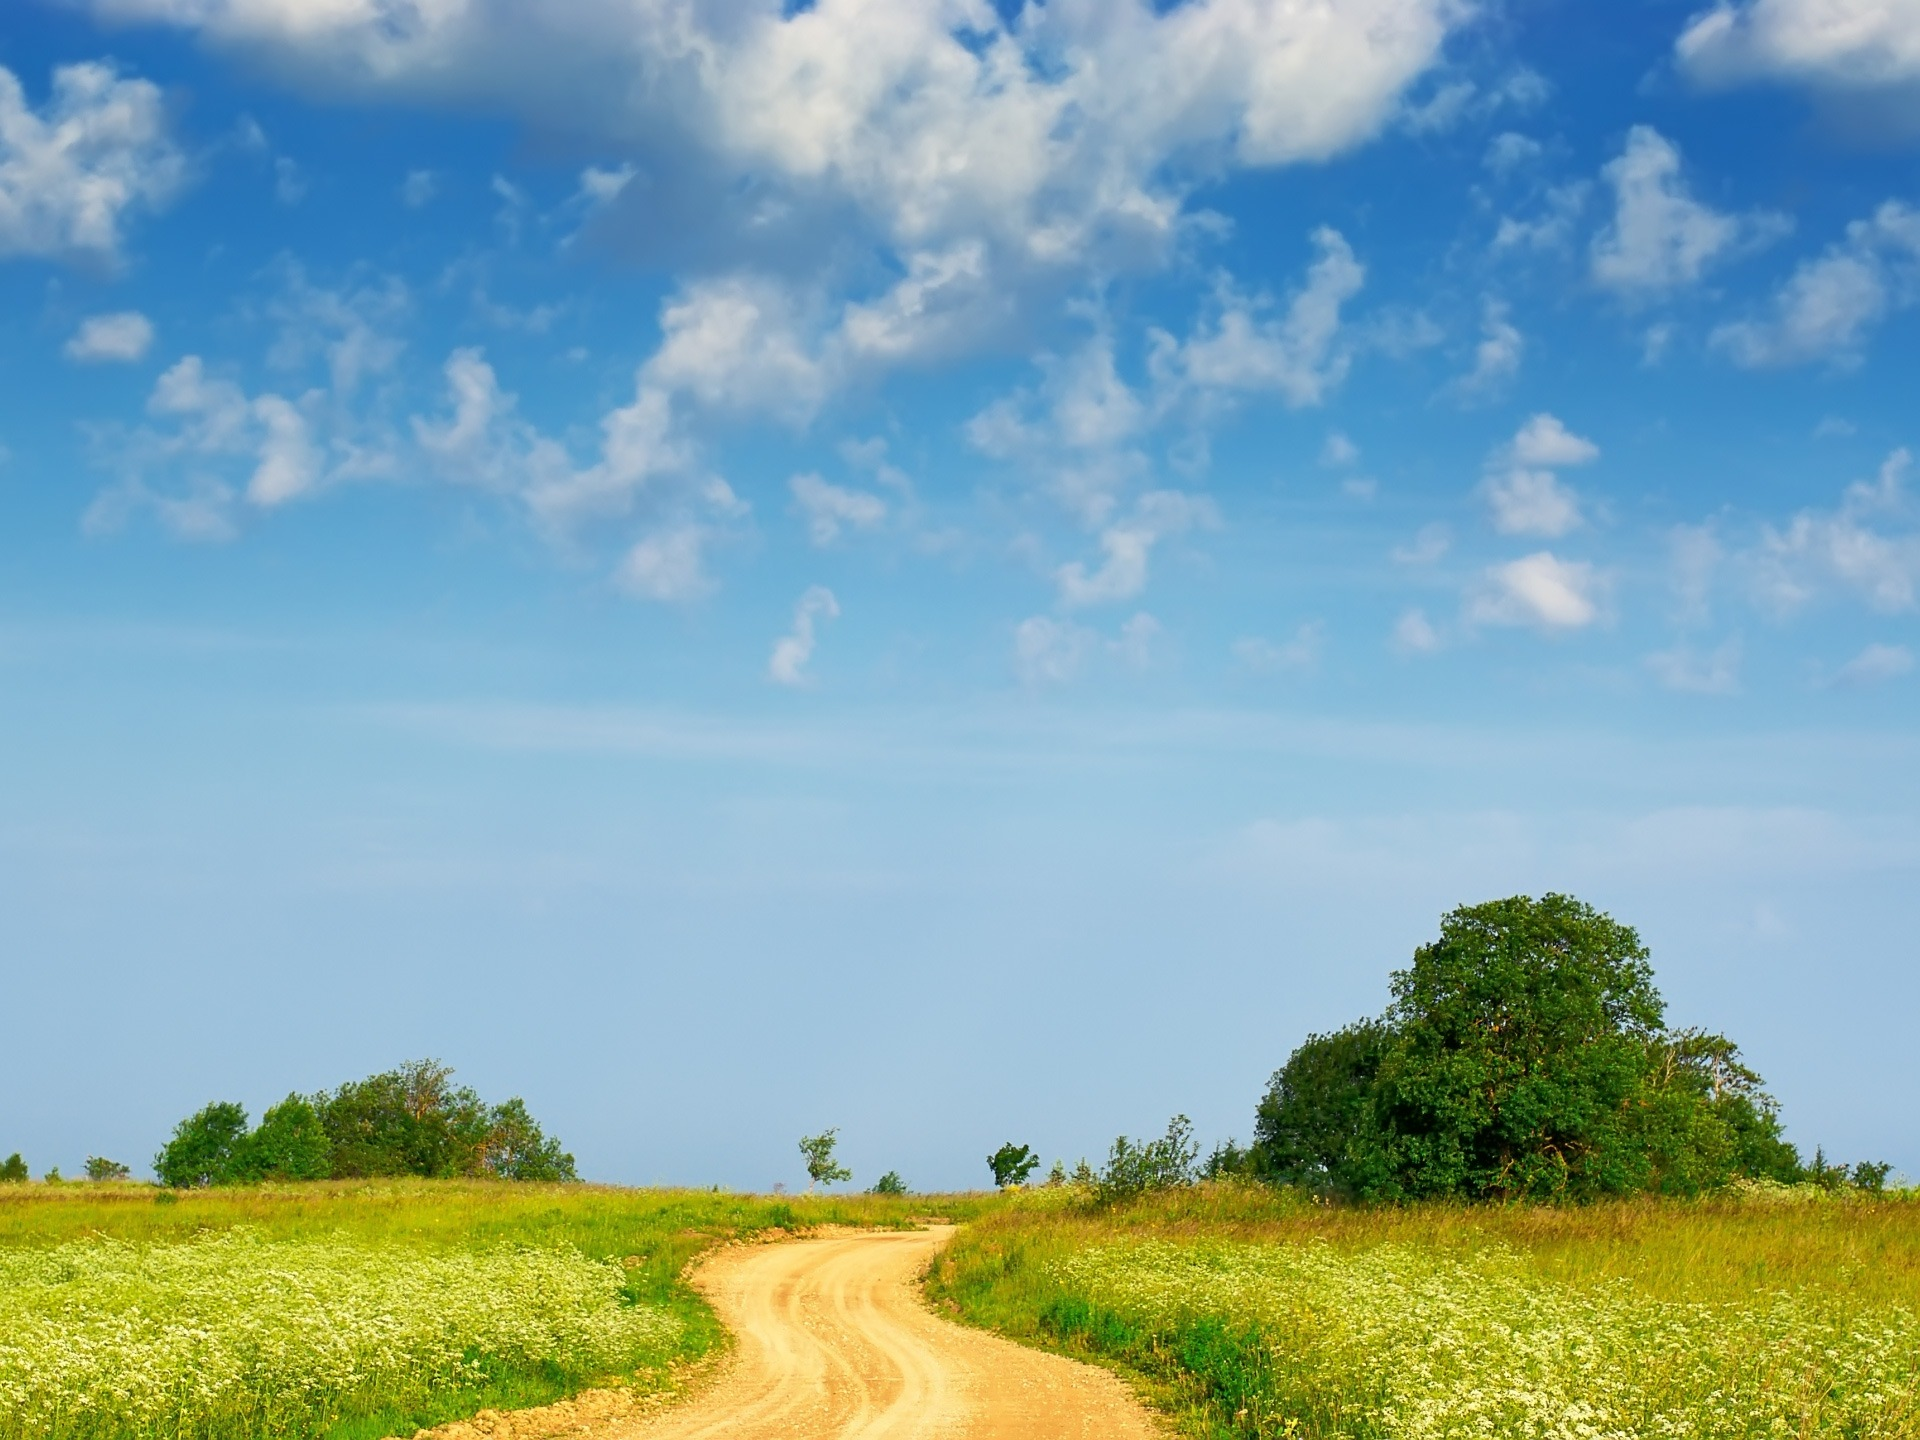 Country path Wallpaper Landscape Nature Wallpapers in jpg format for